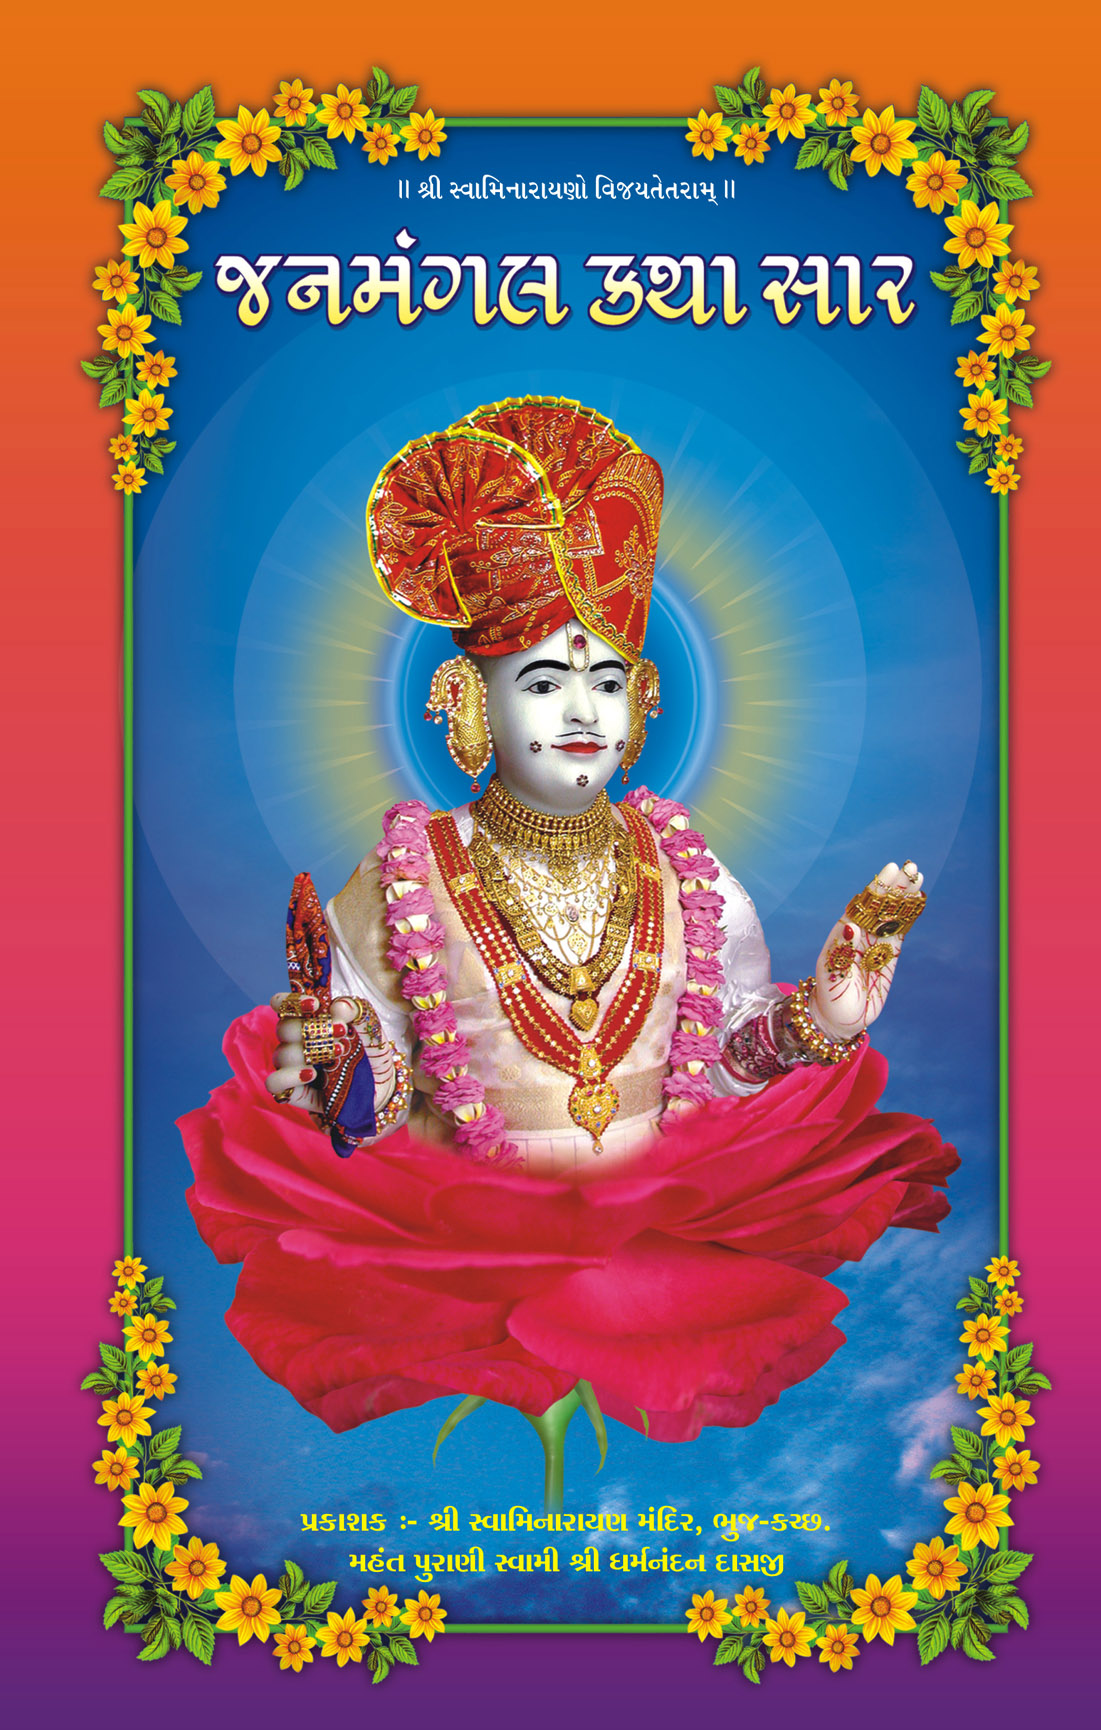 Cover of Shree Janmangal Katha Saar